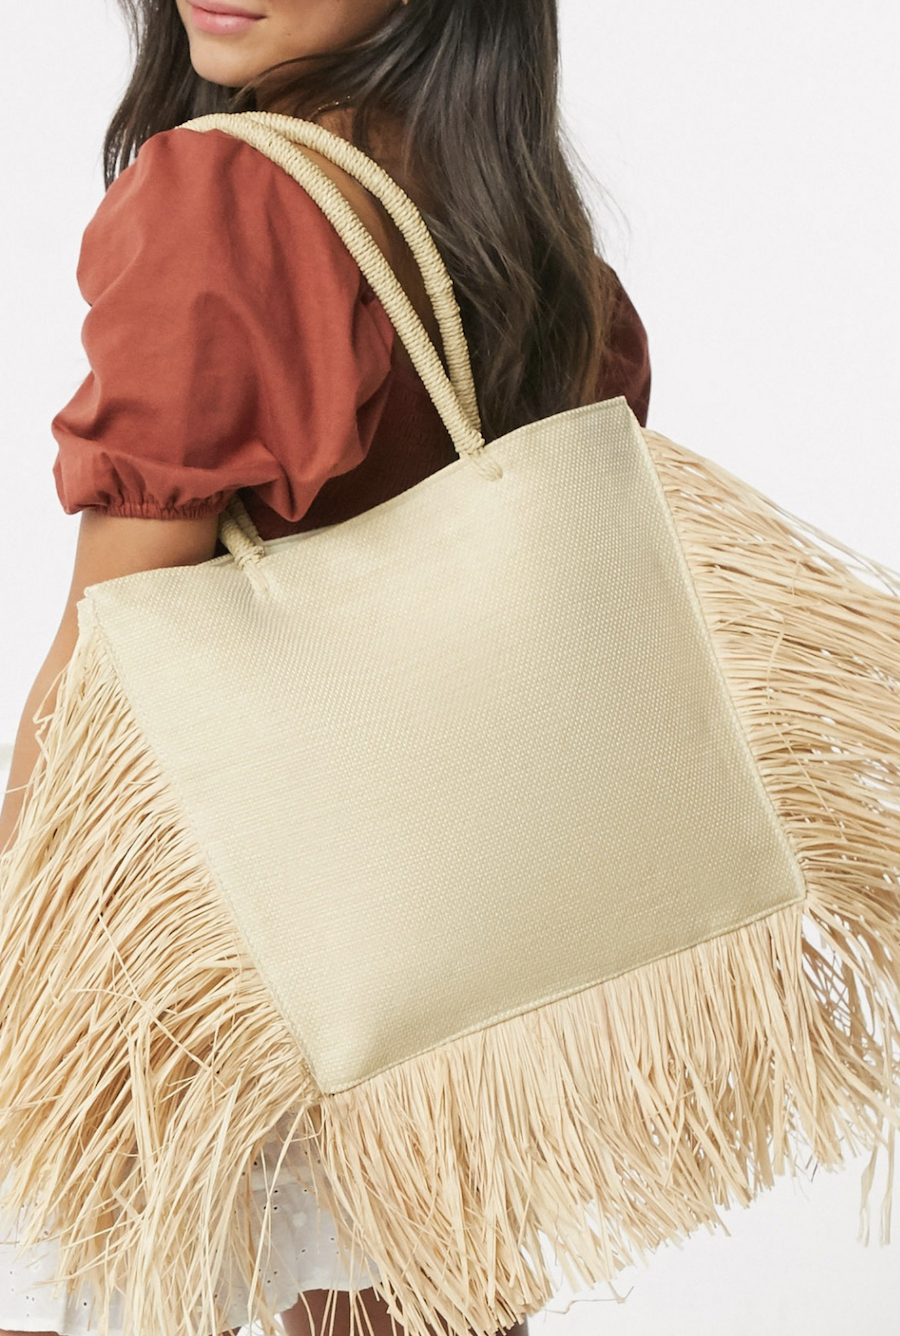 Bolso tote de paja con bordes de flecos en natural exclusivo de South Beach